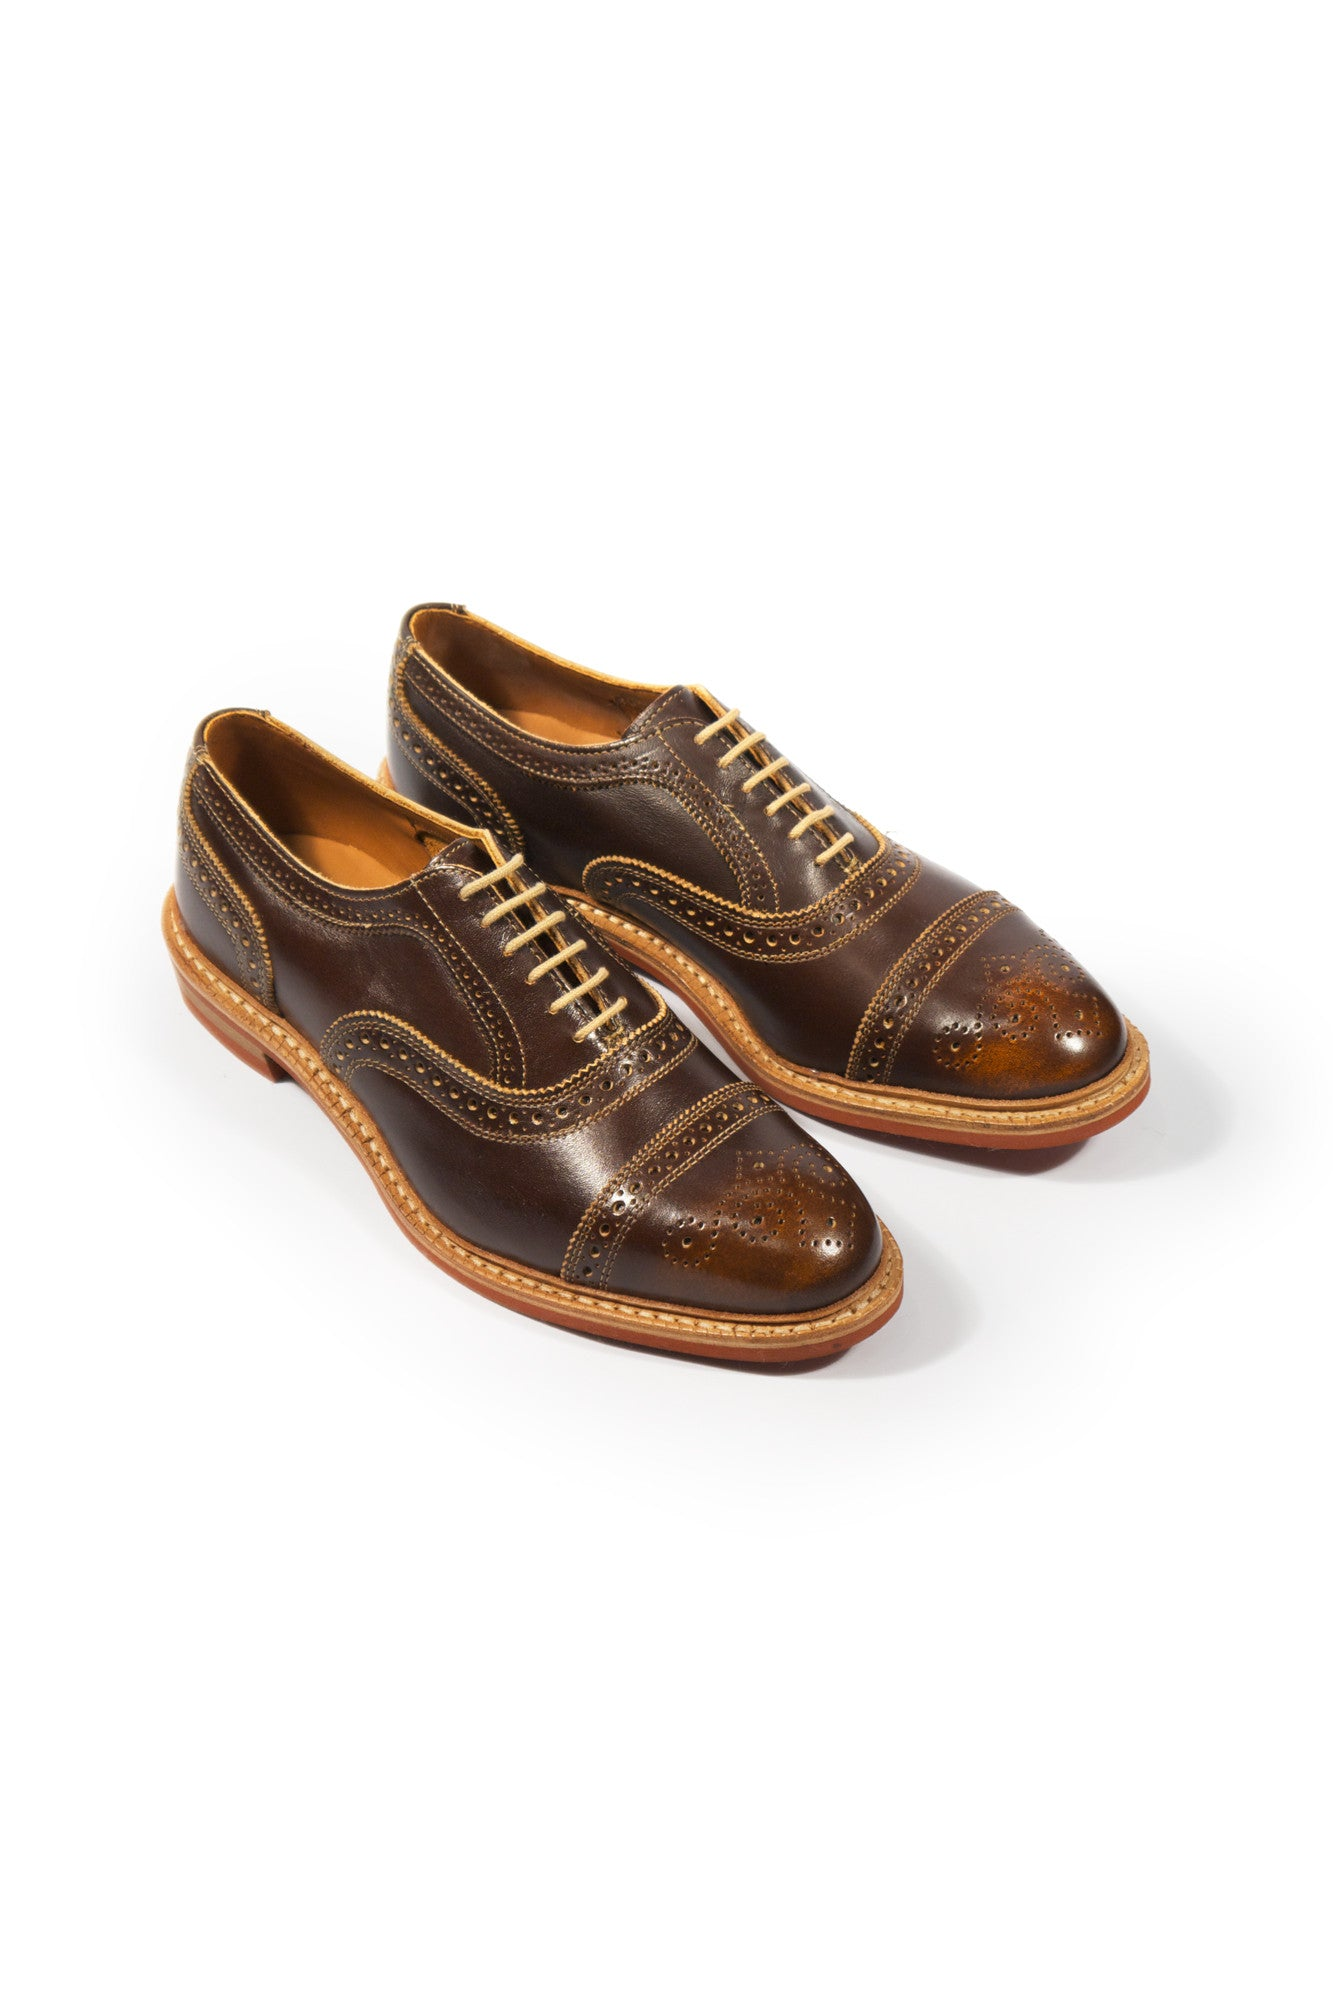 "Allen Edmonds ""Strandmok"" Shoe - Shoes - Allen Edmonds - LALONDE's"